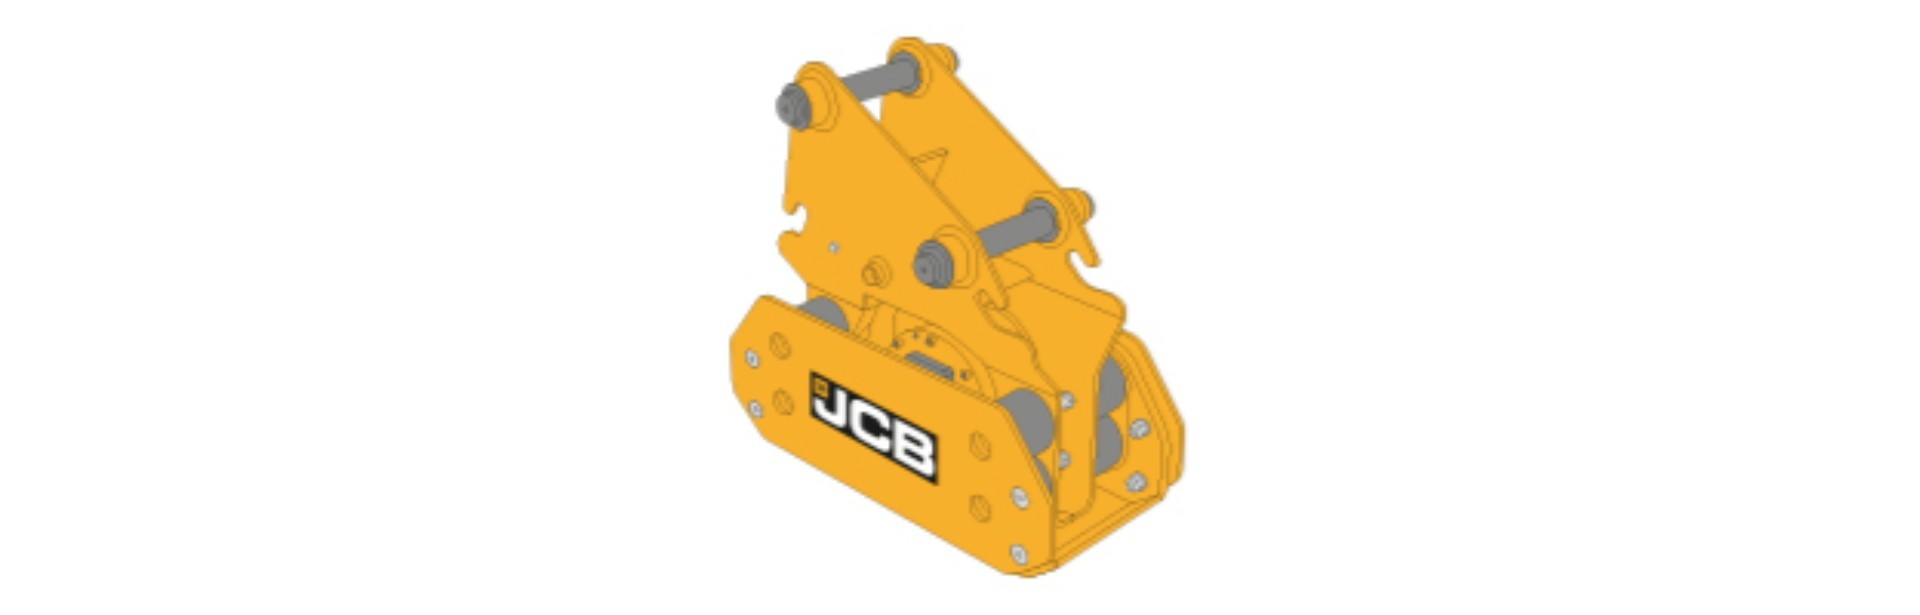 JCB Machine Mounted Compactor Saudi Arabia